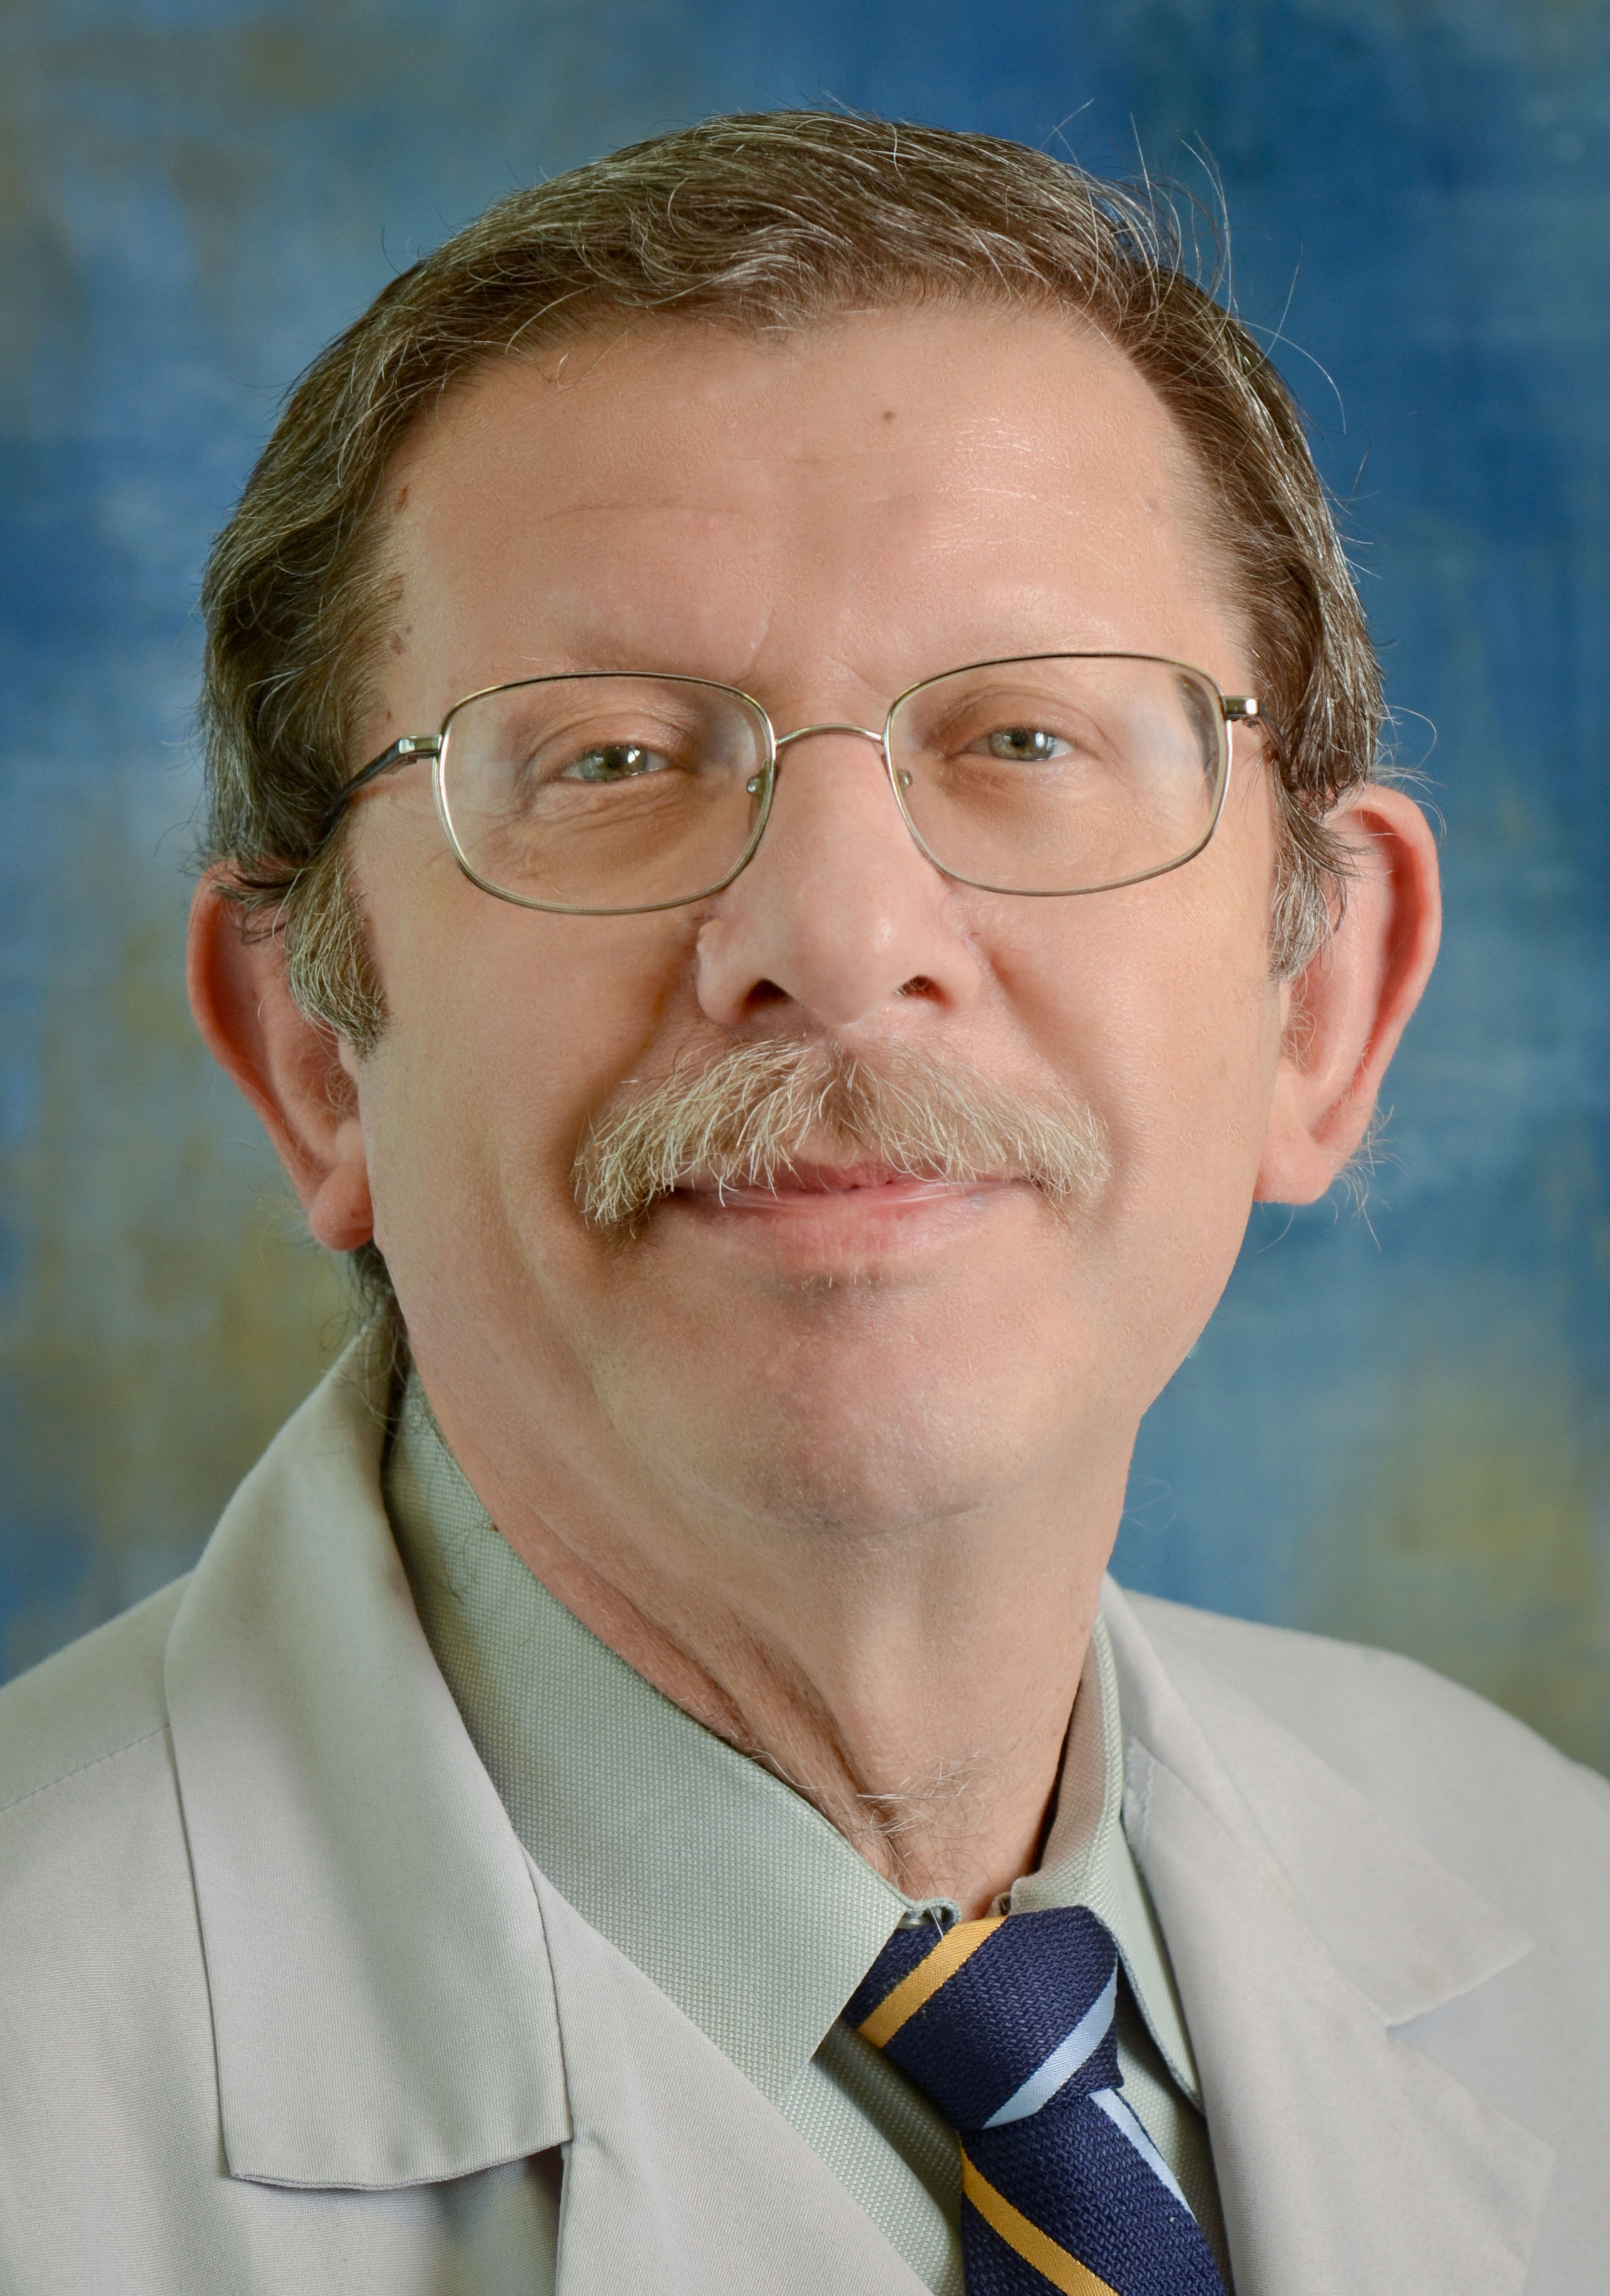 Leon A. Fogelfeld, MD